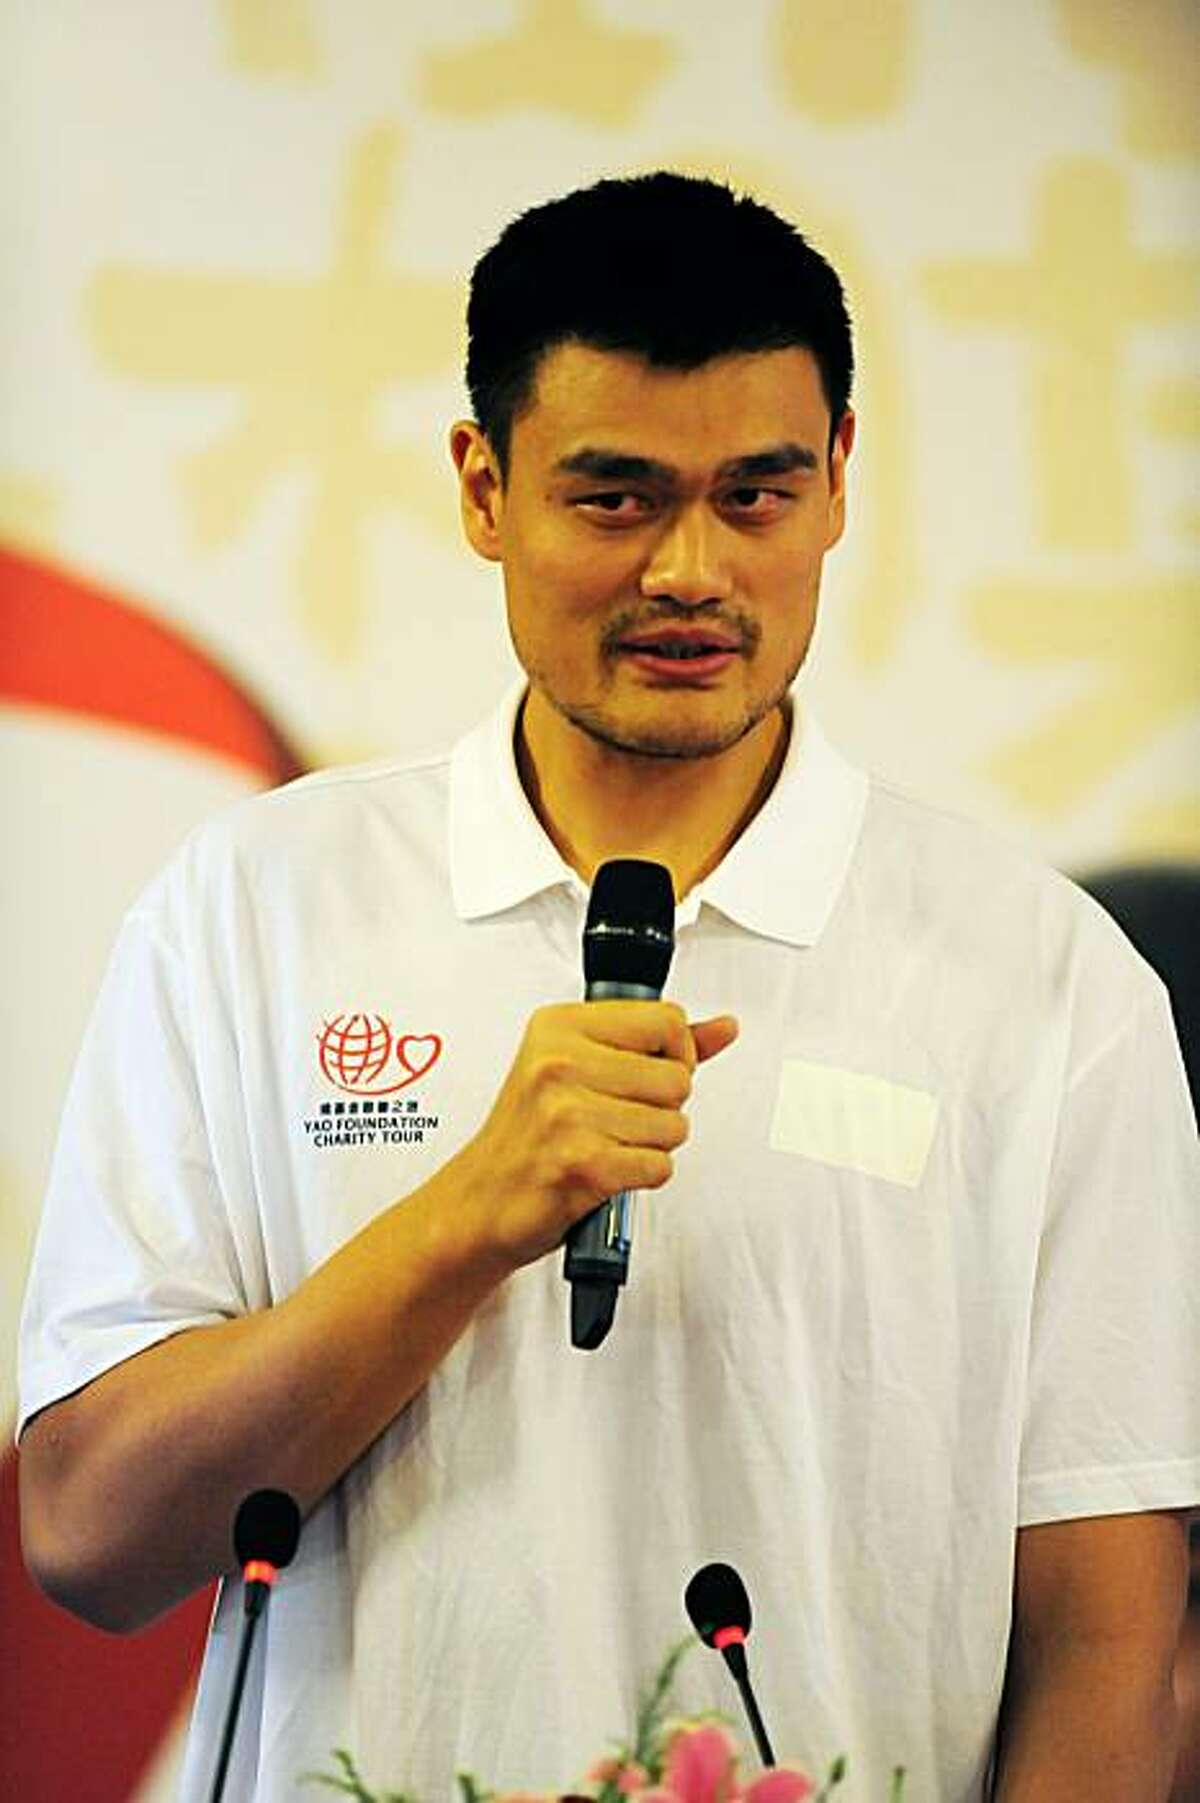 Houston Rockets center Yao Ming takes part in a press conference for Yao Foundation Charity Tour, in Beijing on July 22, 2010. Yao thinks it will take at least one injury-free NBA season before he can even start thinking about regaining his best form forthe Houston Rockets.